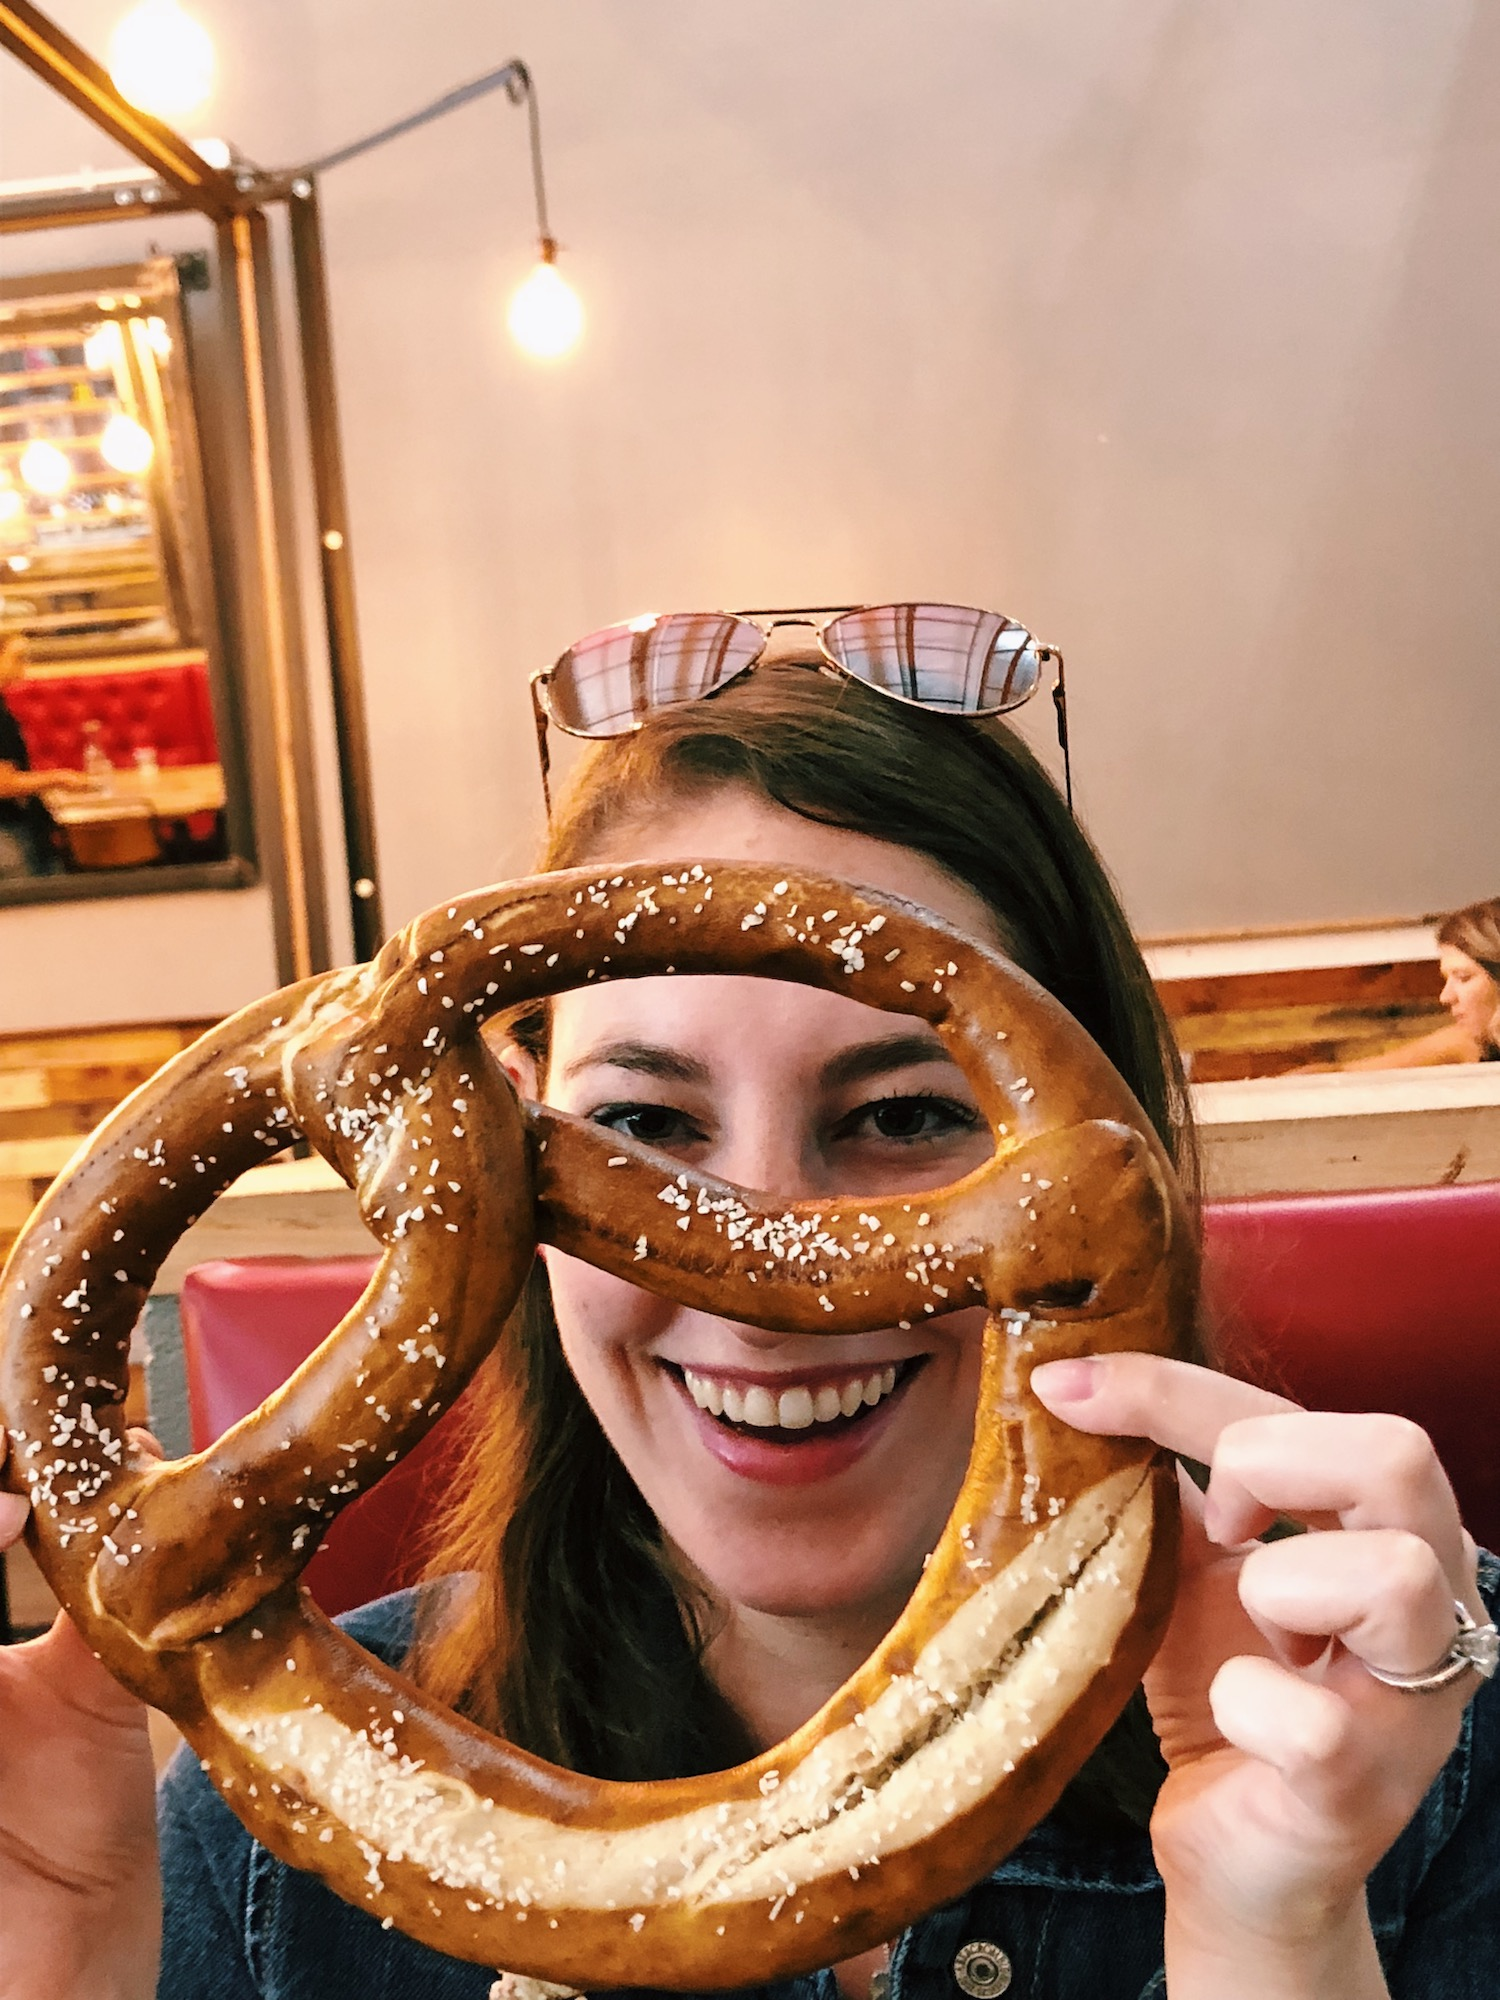 Giant face-sized pretzel